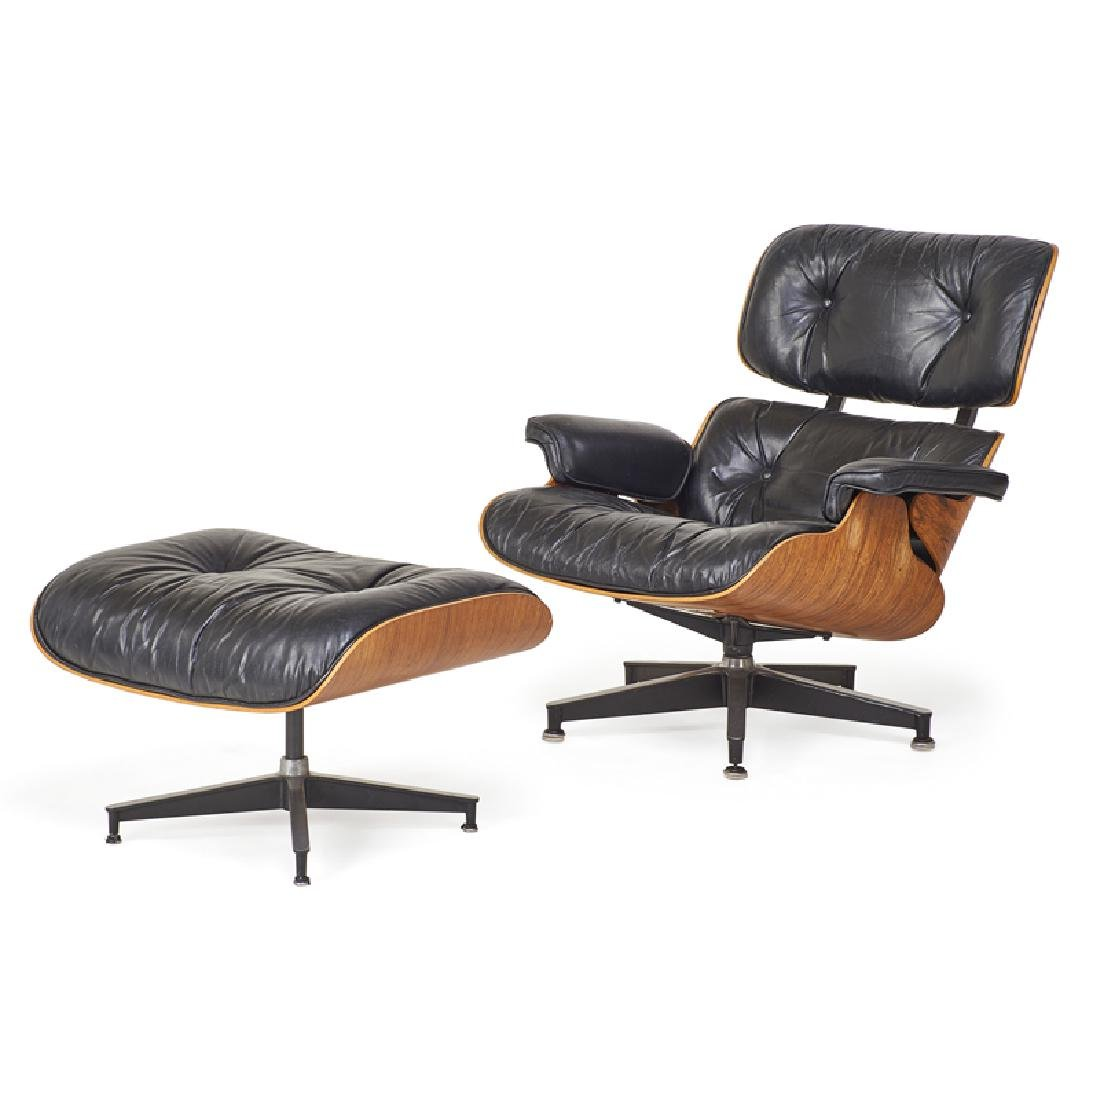 CHARLES AND RAY EAMES Lounge chair and ottoman - 2